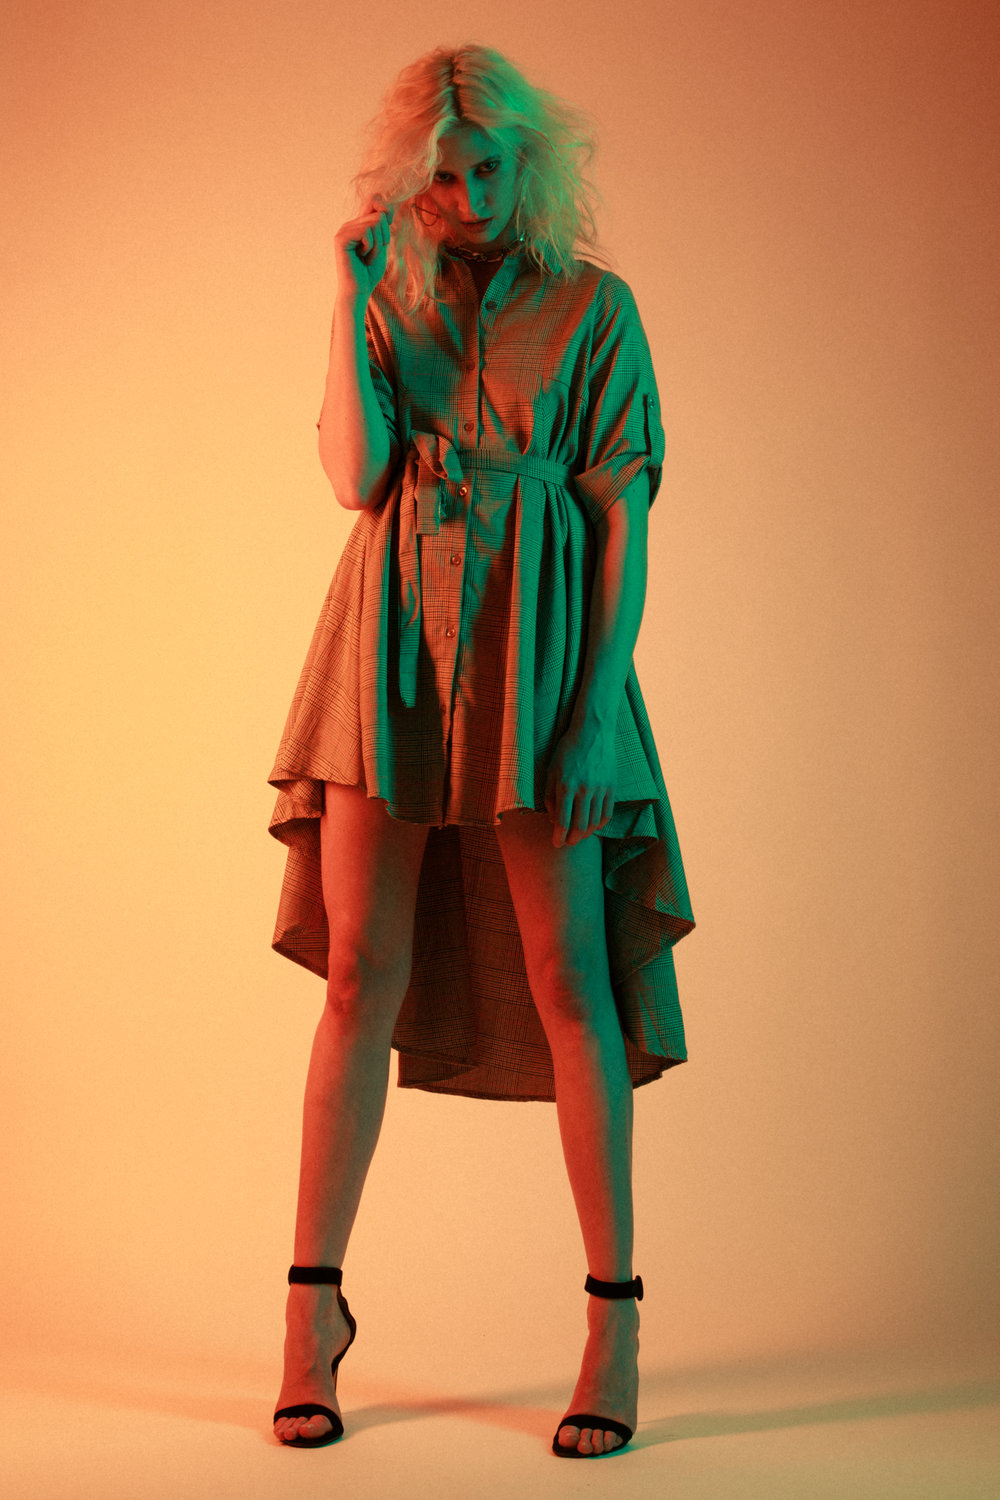 Eva Wagner photographed by  Merimon Hart , styled by Crystelle Colucci, make up by Duran Tsang and hair by Nico Gianfortune